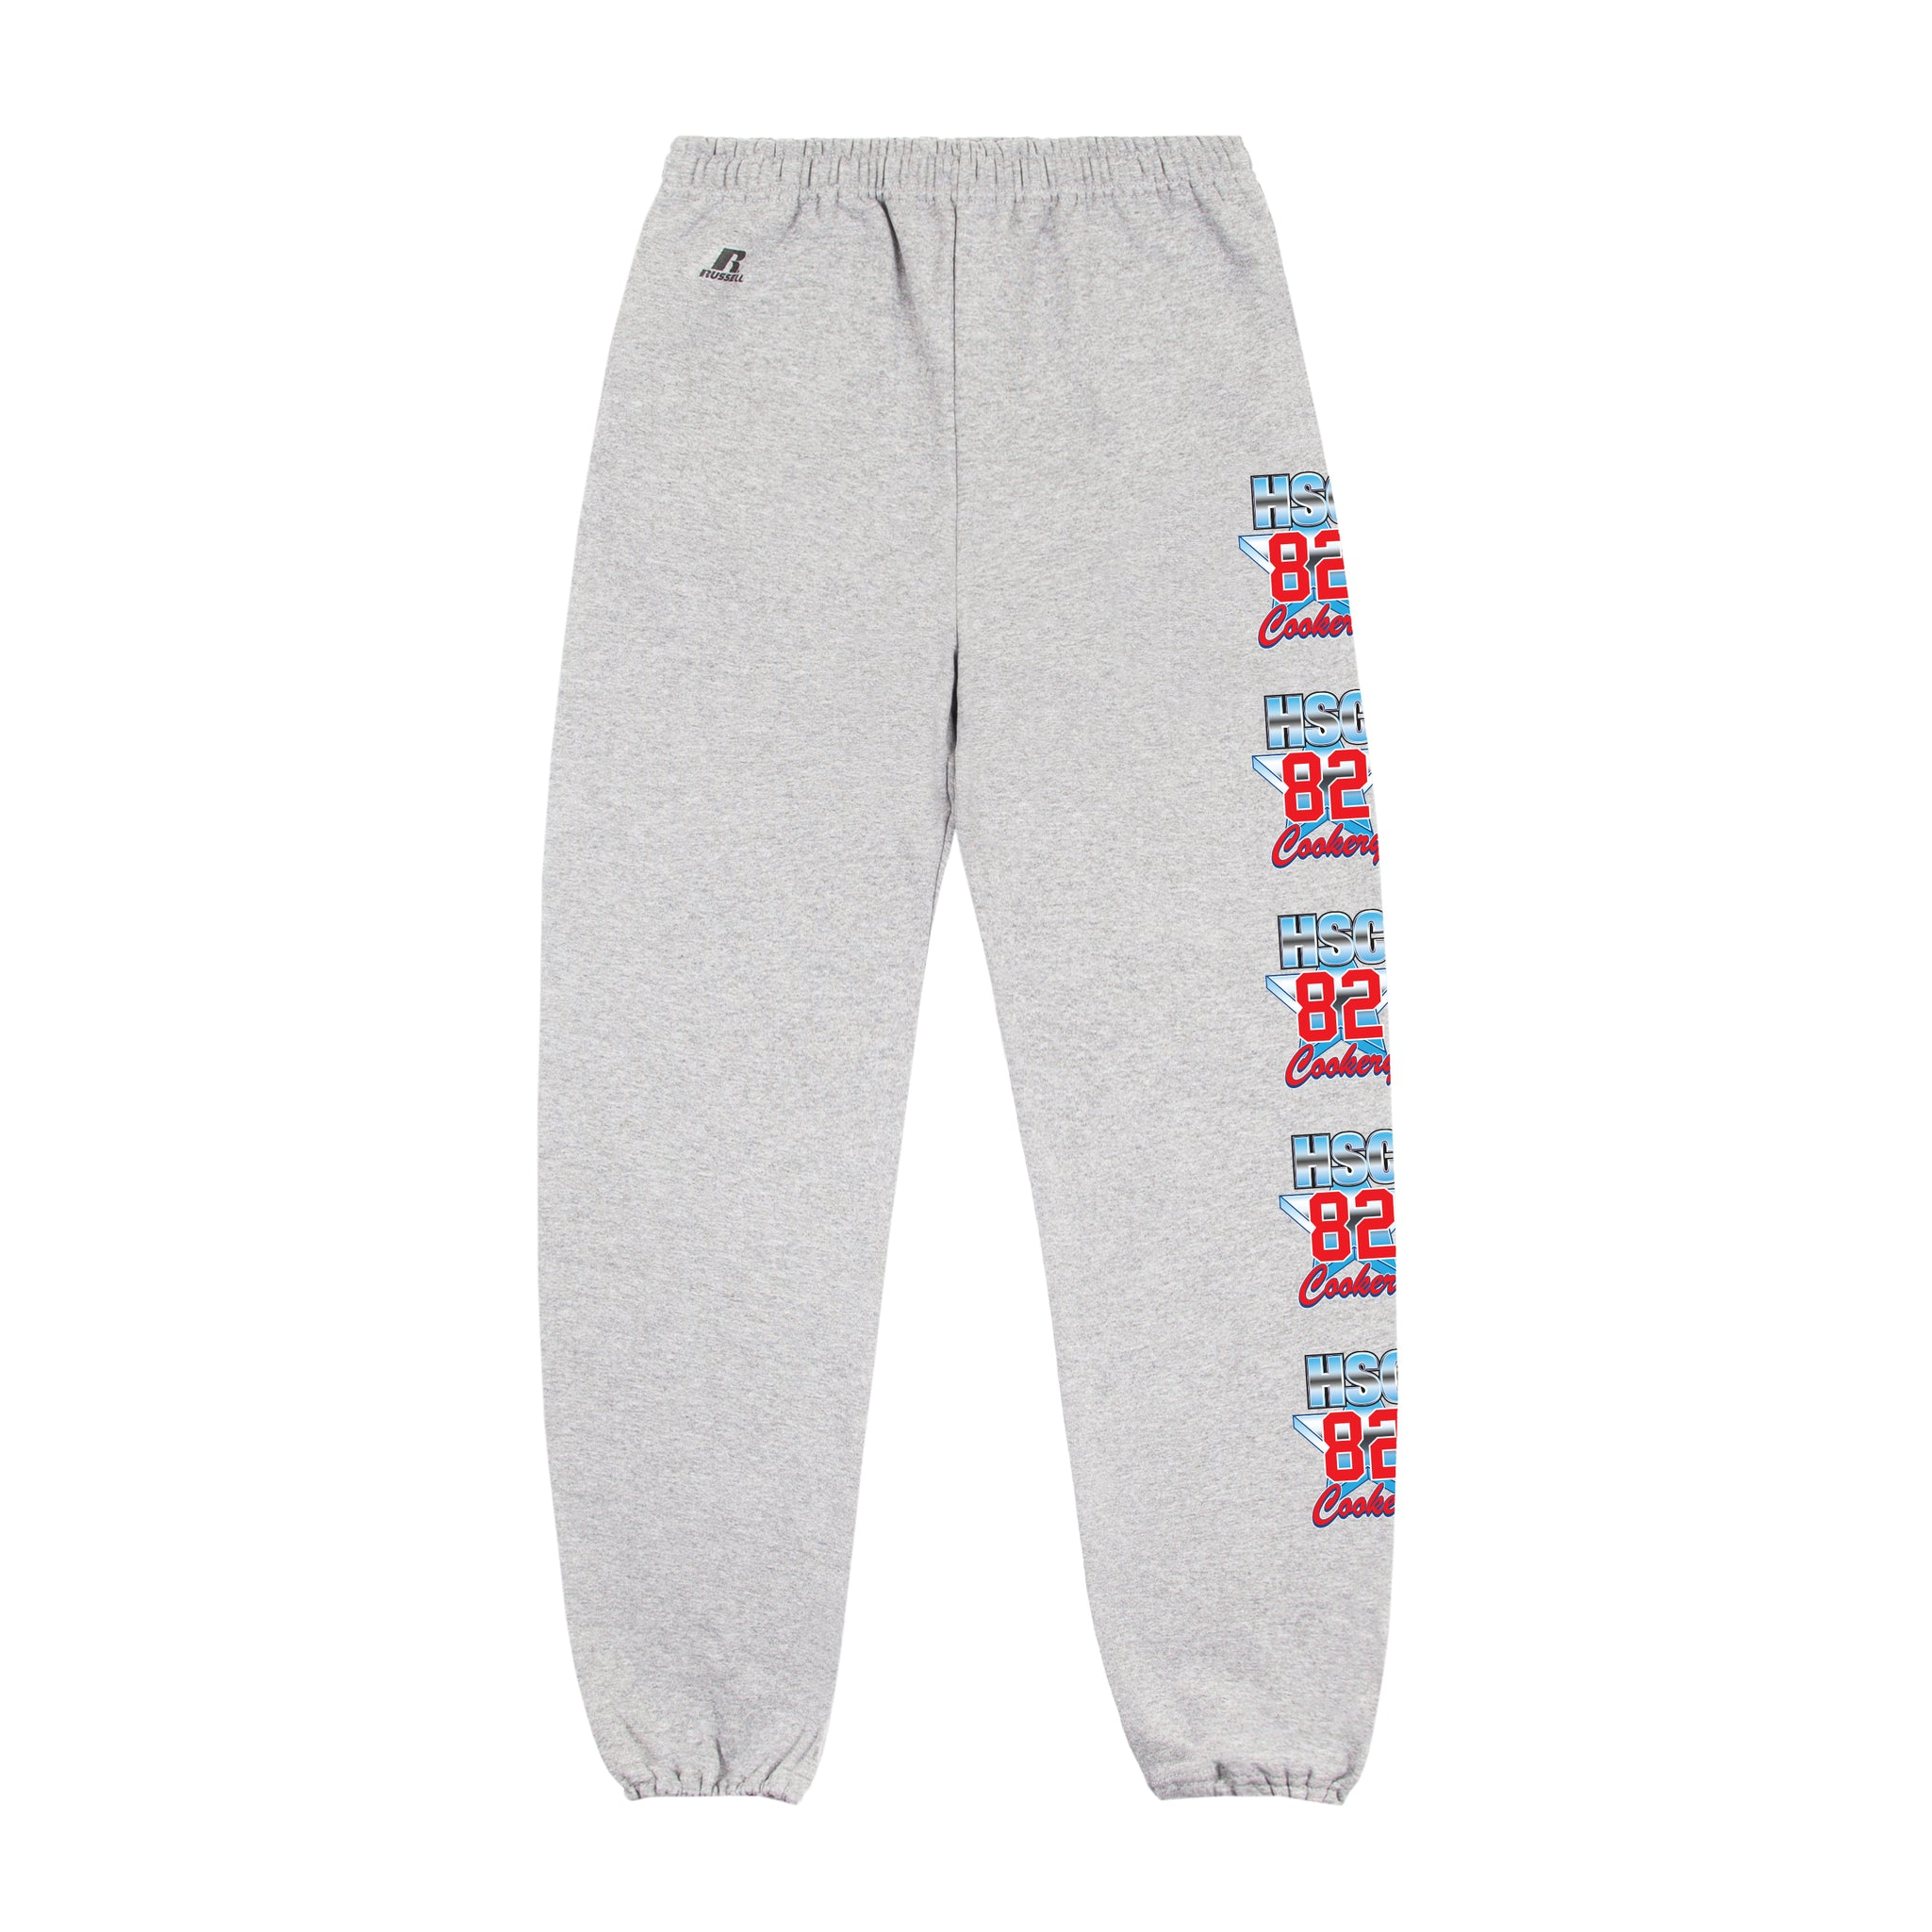 All Star Sweats